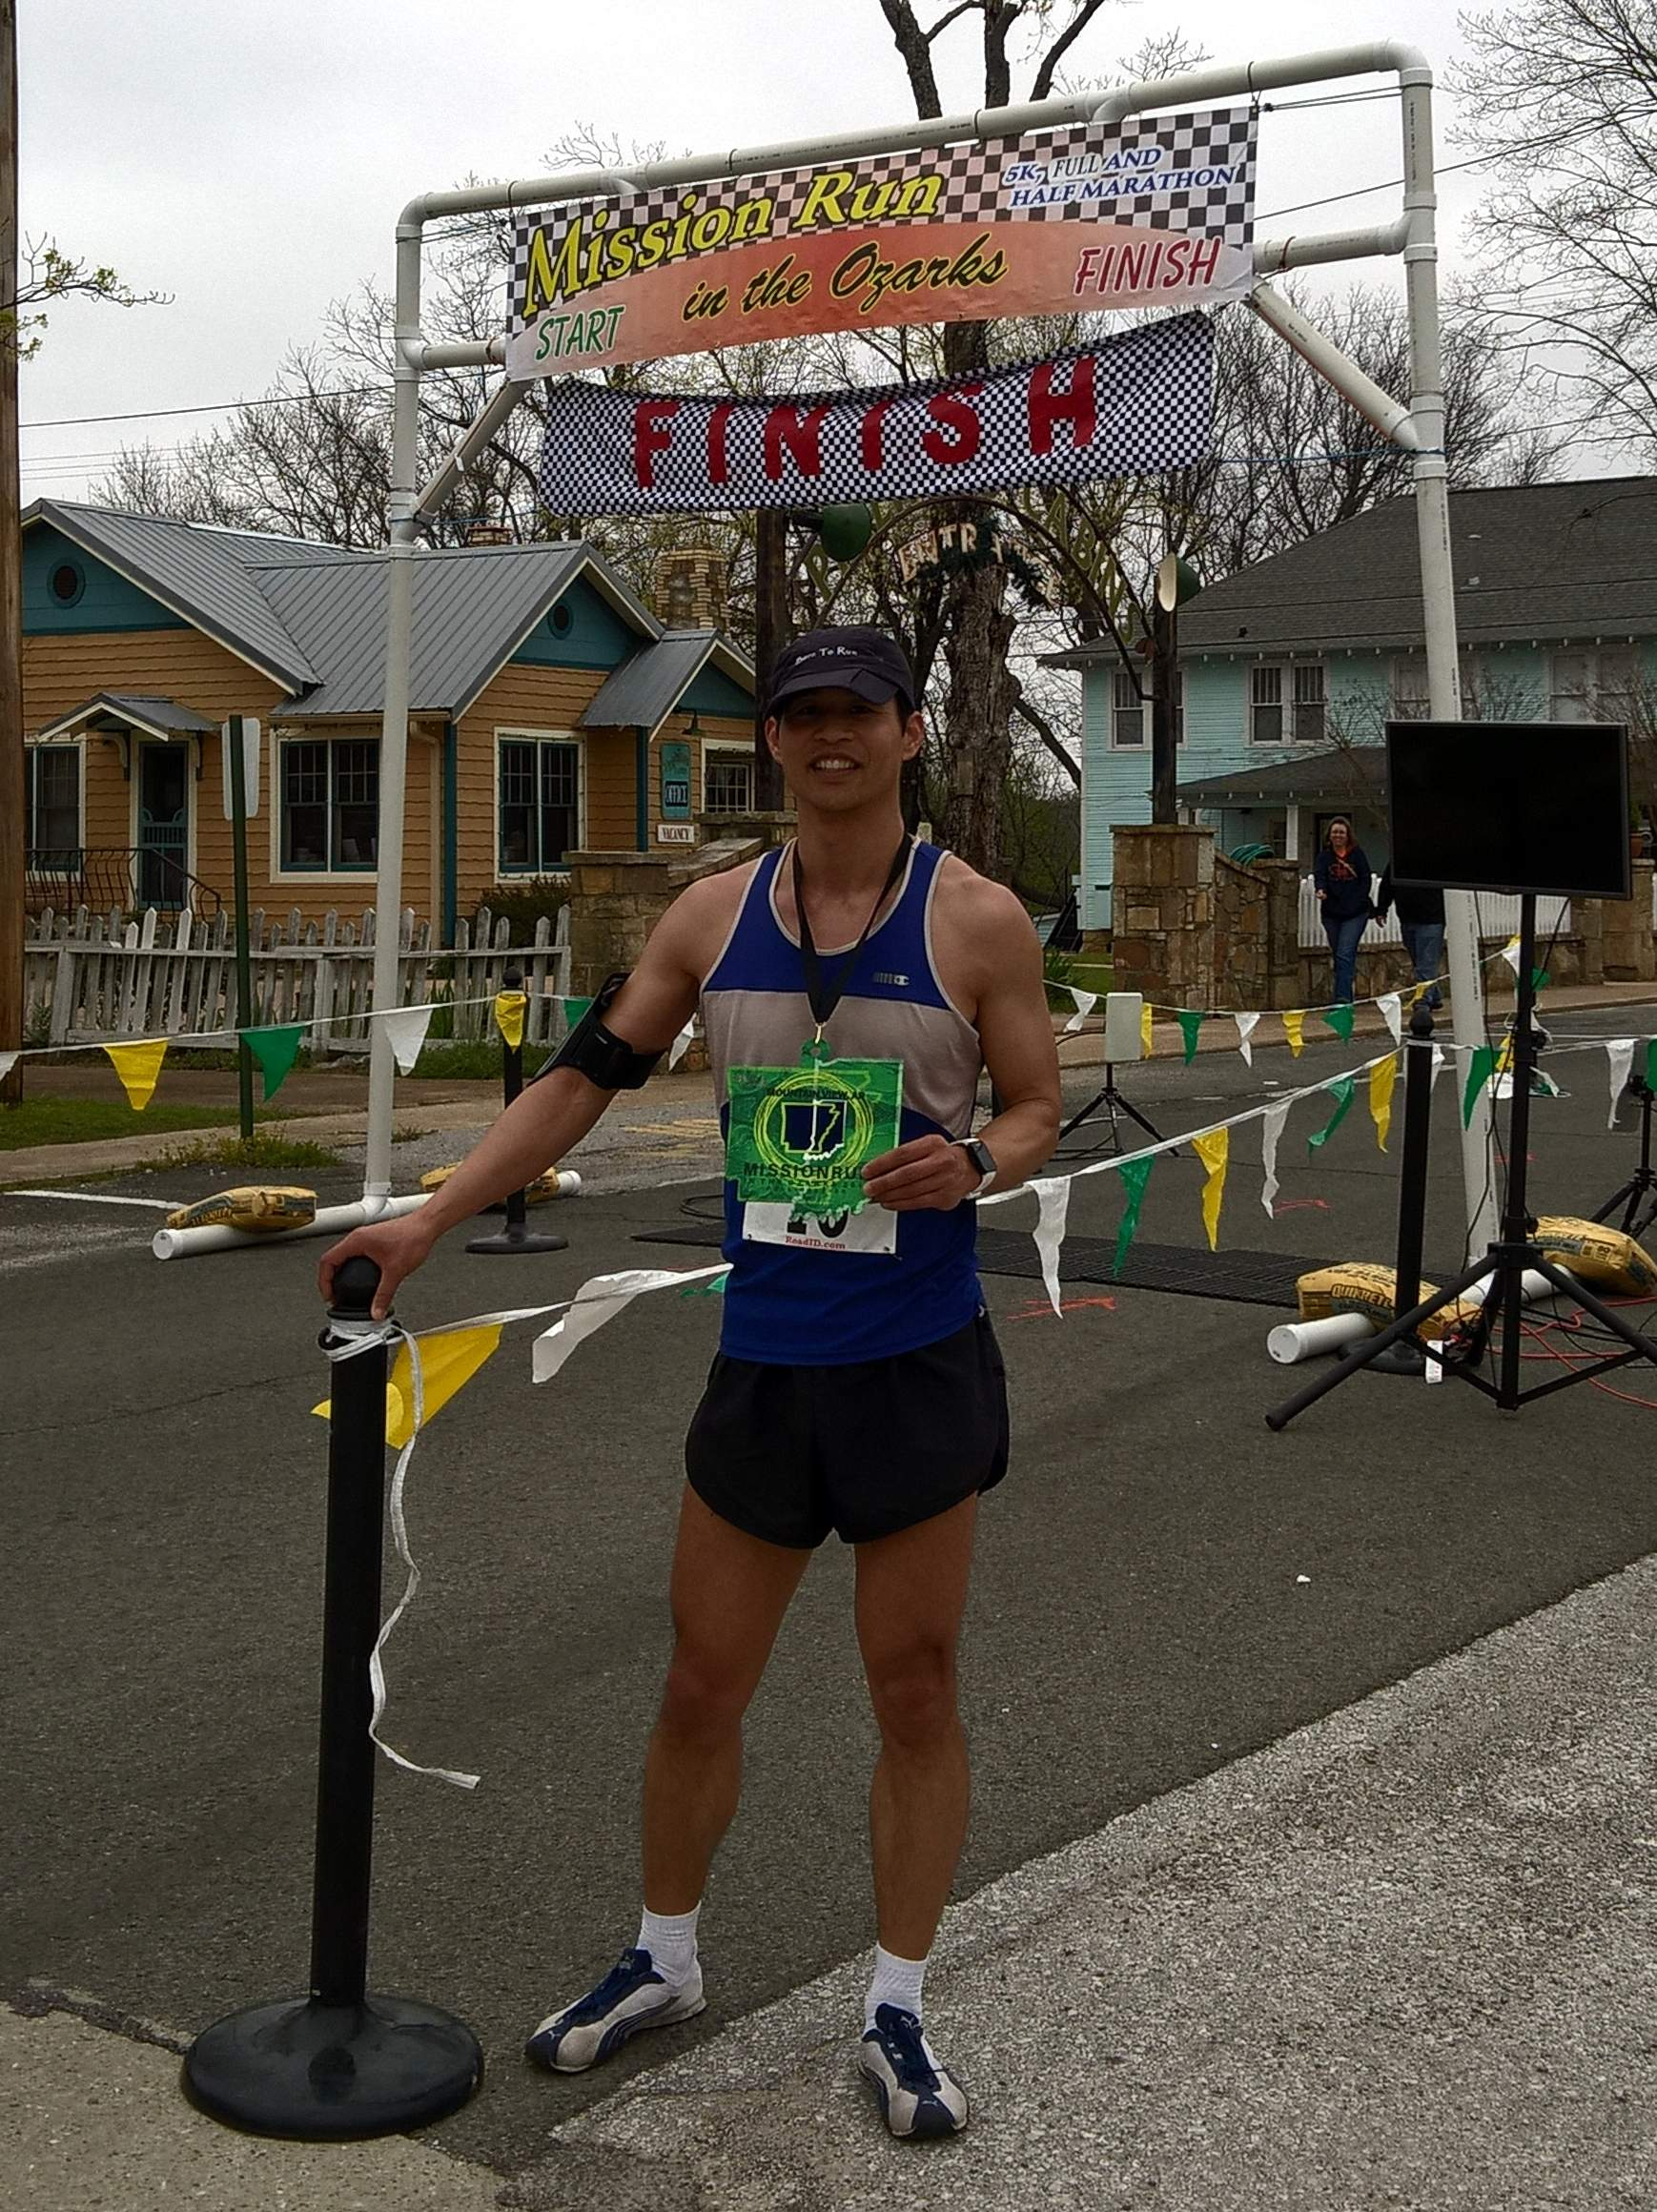 Featured photo for Mission Run in the Ozarks Marathon